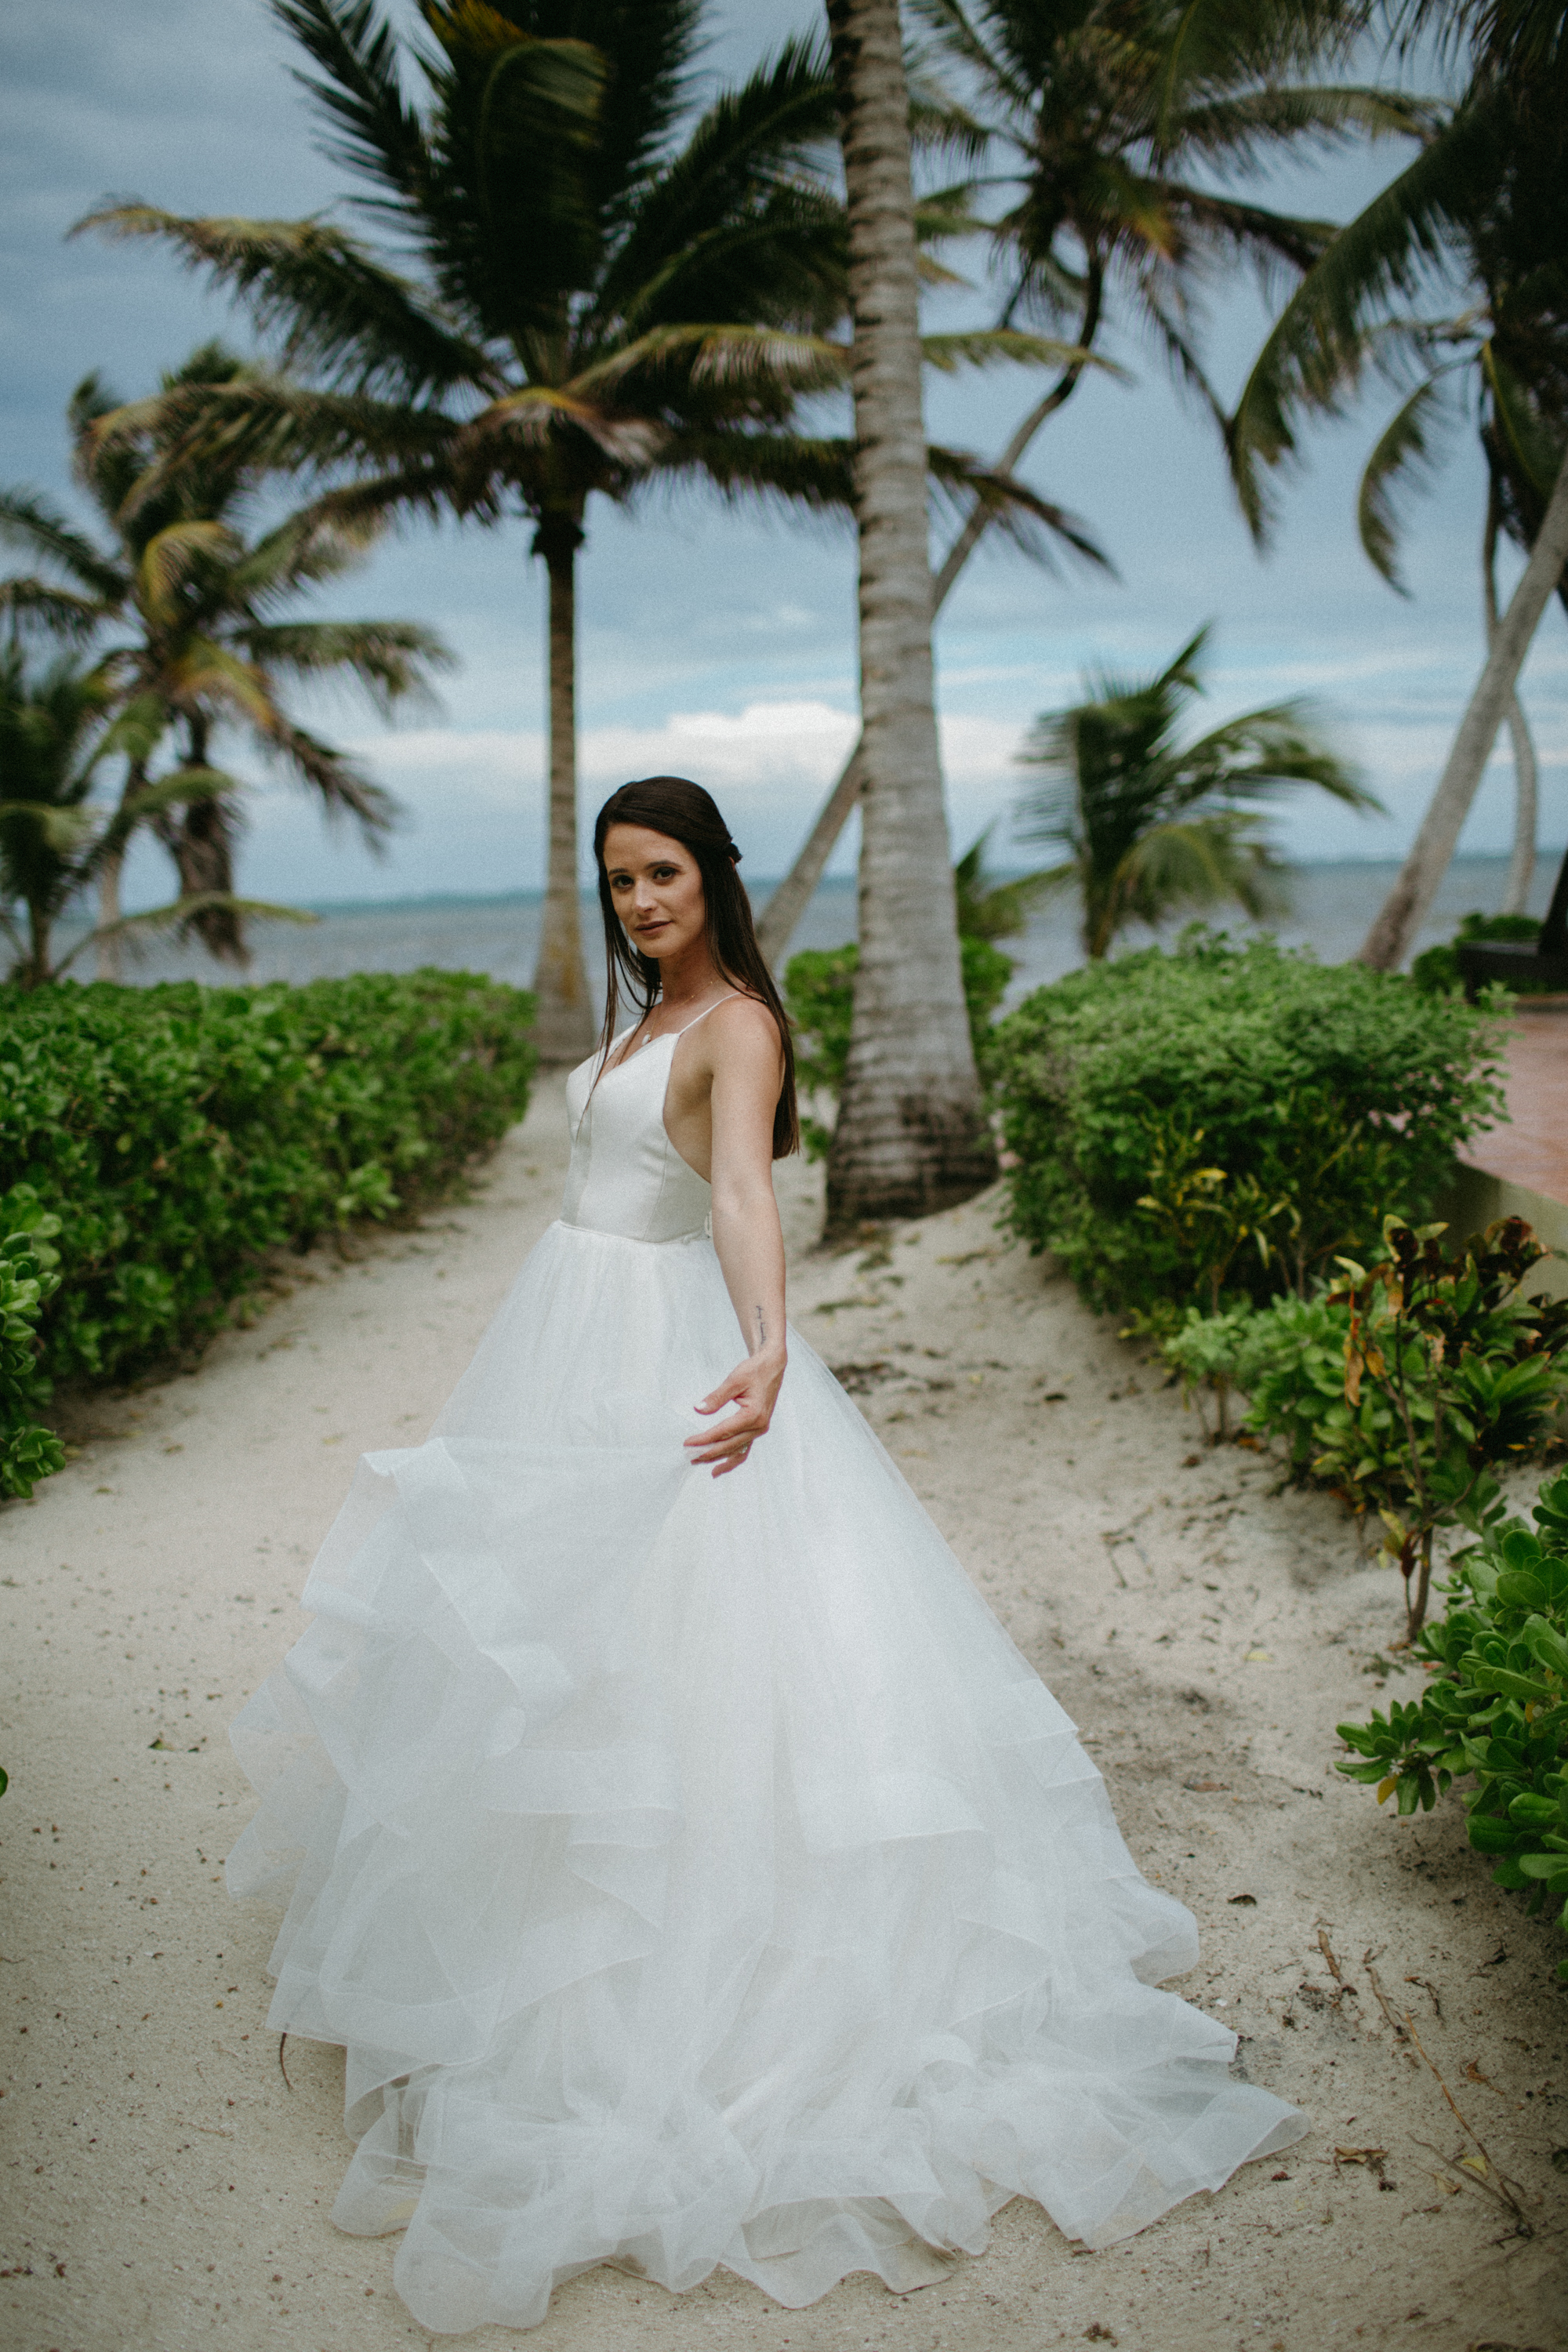 san-pescador-belize-wedding-christinemariephoto-j-k-63.jpg